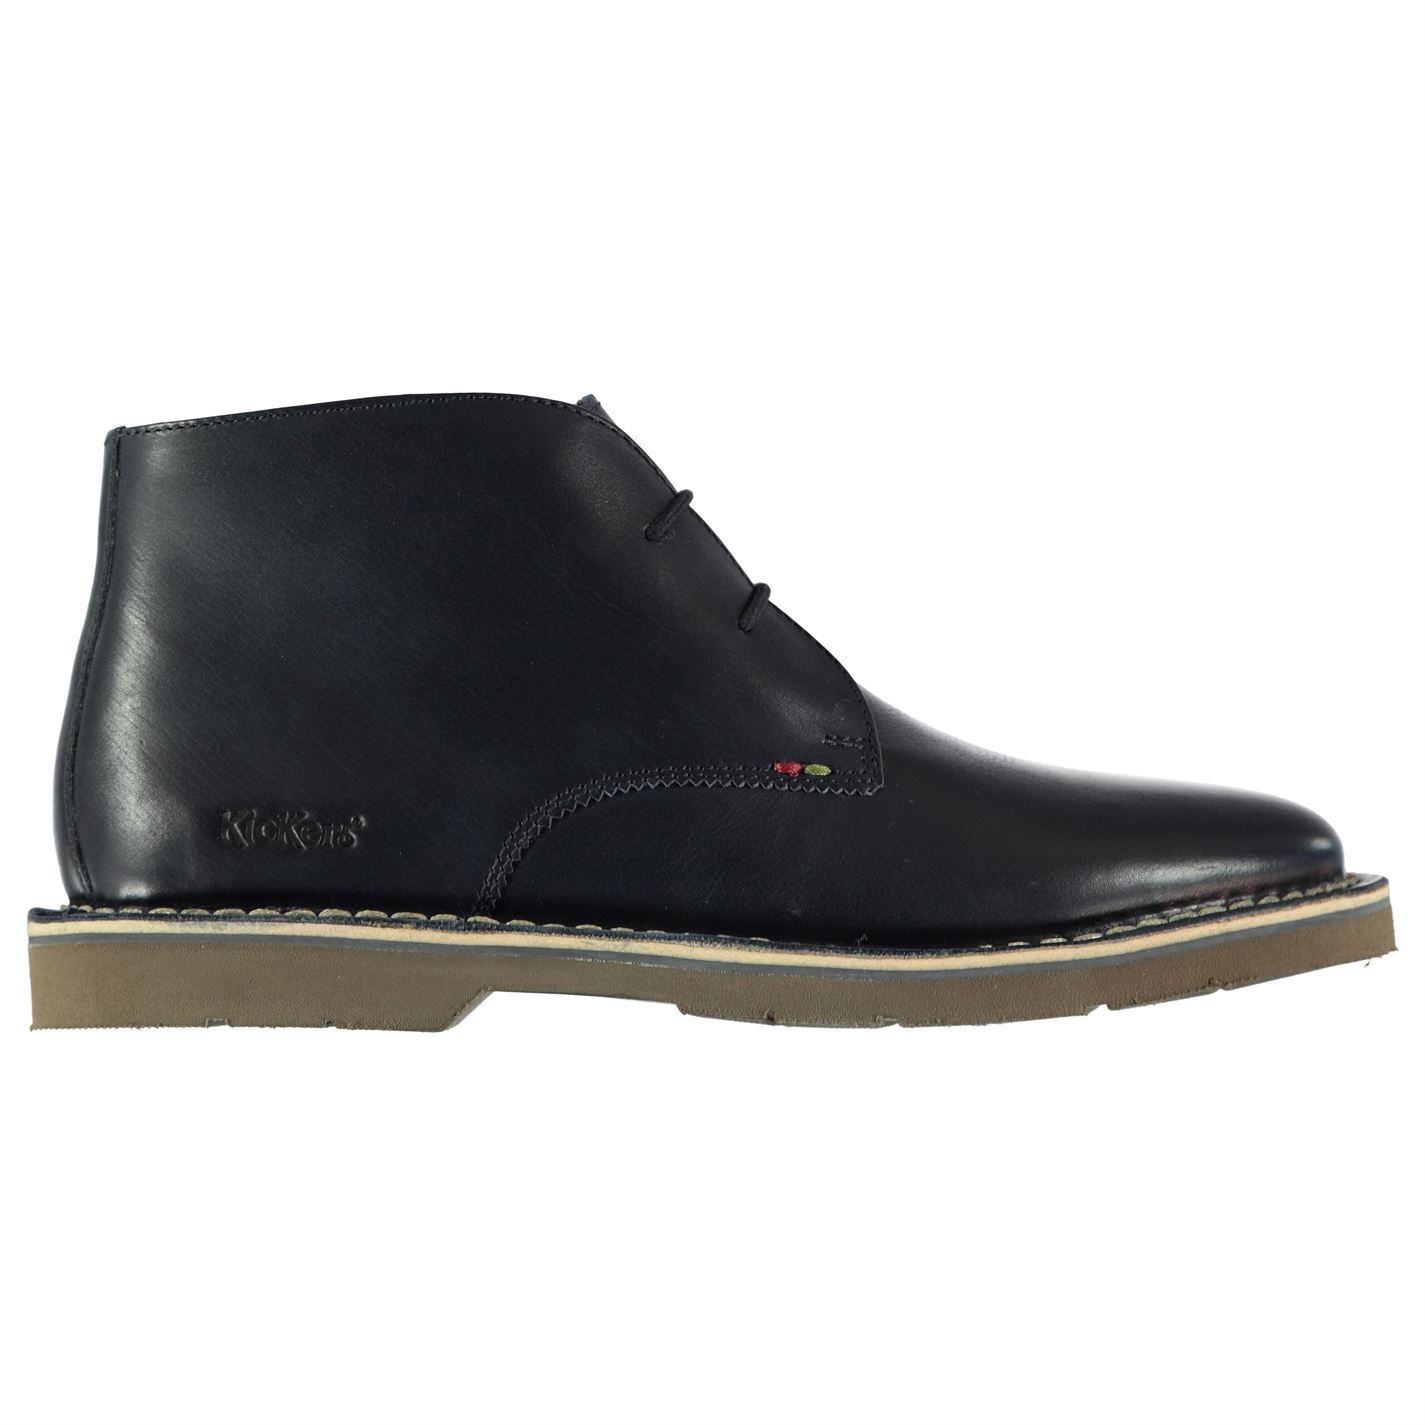 Details about Kickers Kanning Plus Mid Top Shoe Mens Navy Blue Lace Up Formal Footwear